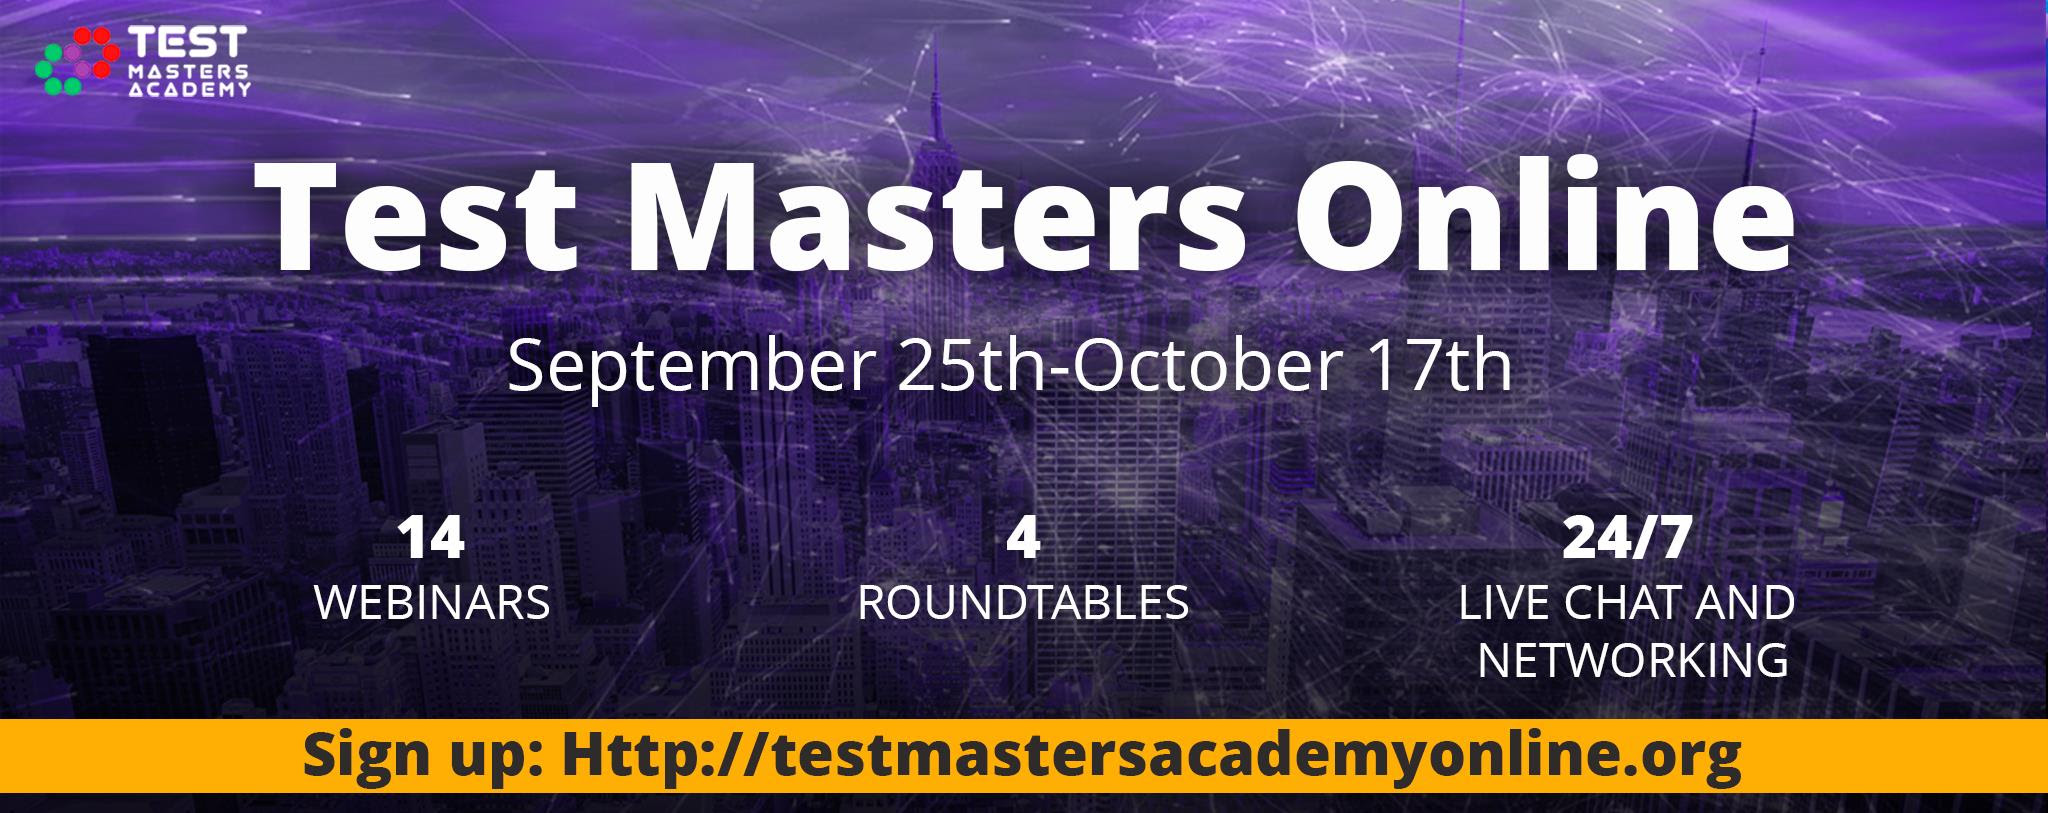 b14b8e9d6 Test Masters Academy starts free series of webinars and discussions on  hottest topics in software testing by renowned speakers and community  leaders.